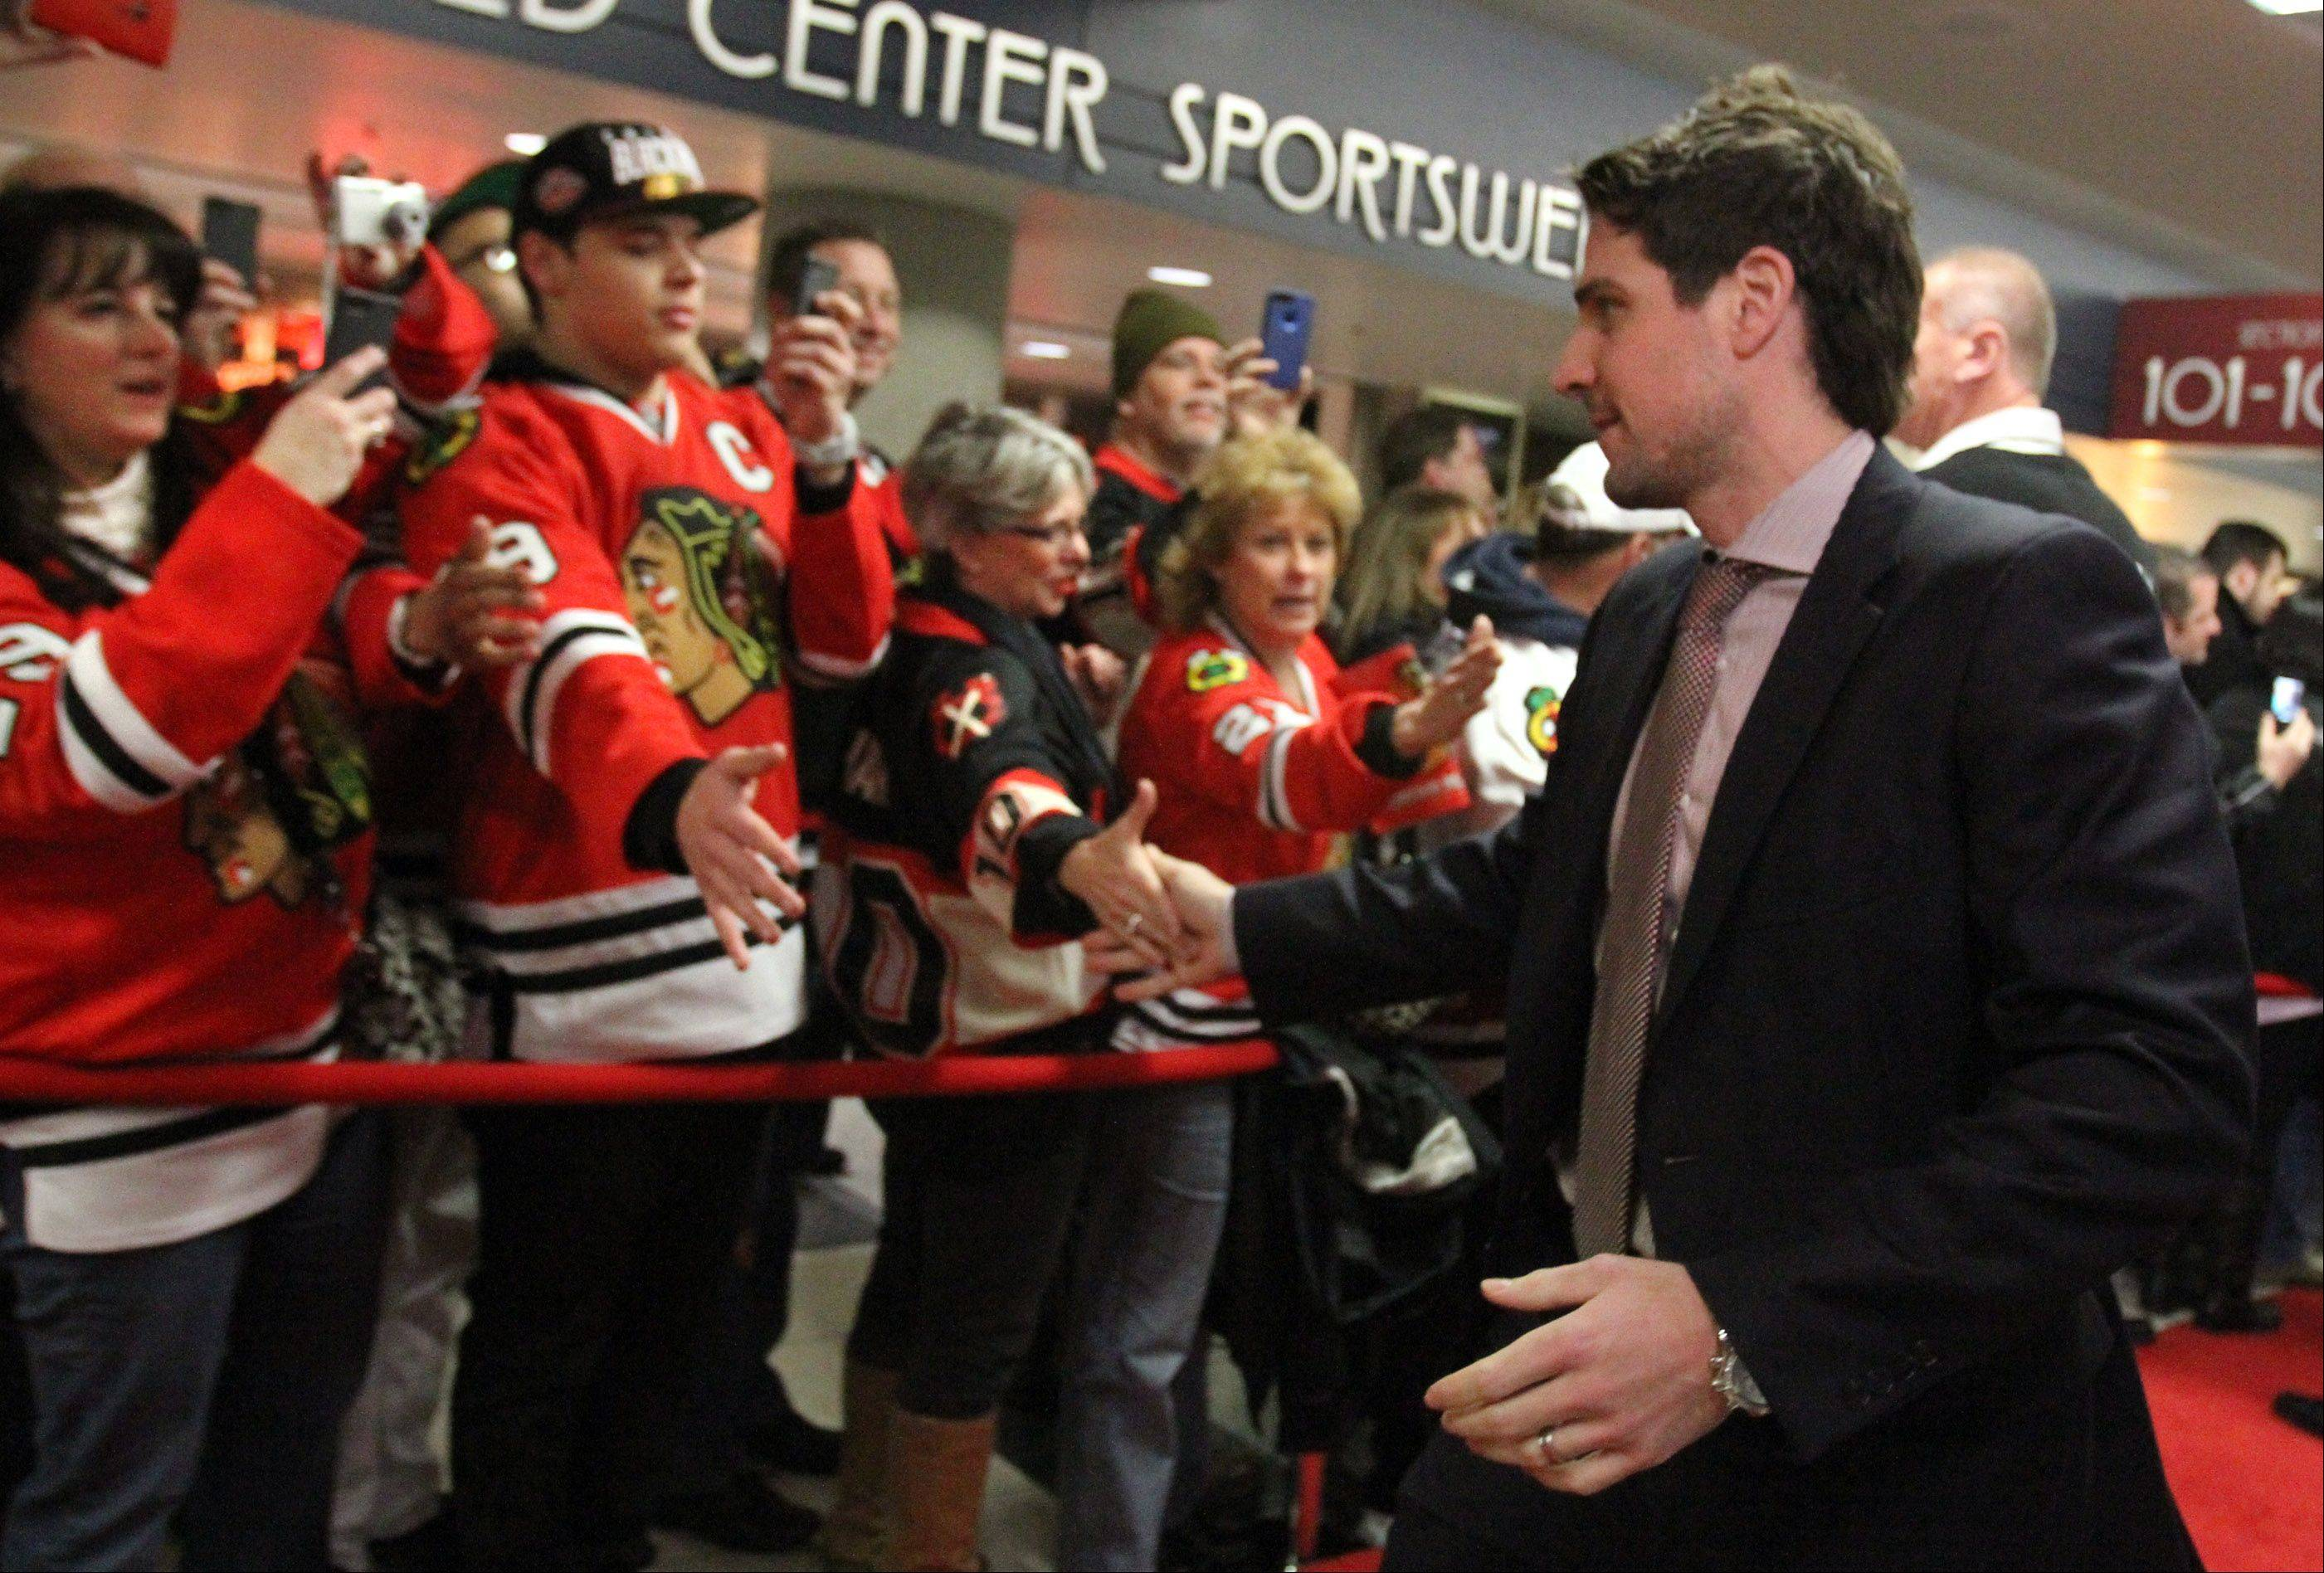 Chicago Blackhawks center Patrick Sharp high-fives fans at the team's red carpet event before the home opener.